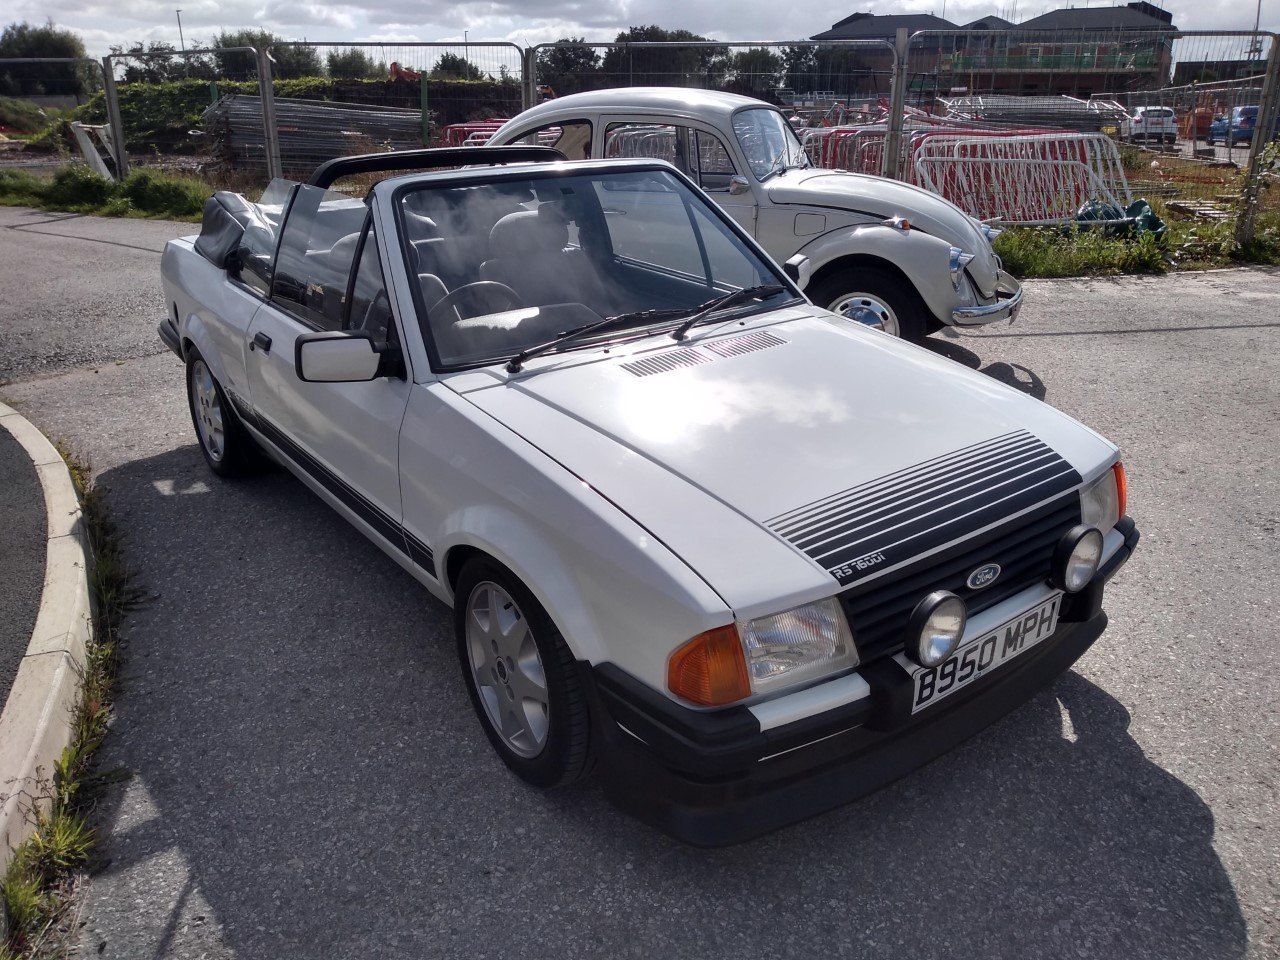 1985 Ford Escort Mk3 1.6i RS1600i Rep Cabriolet 81K For Sale (picture 1 of 6)